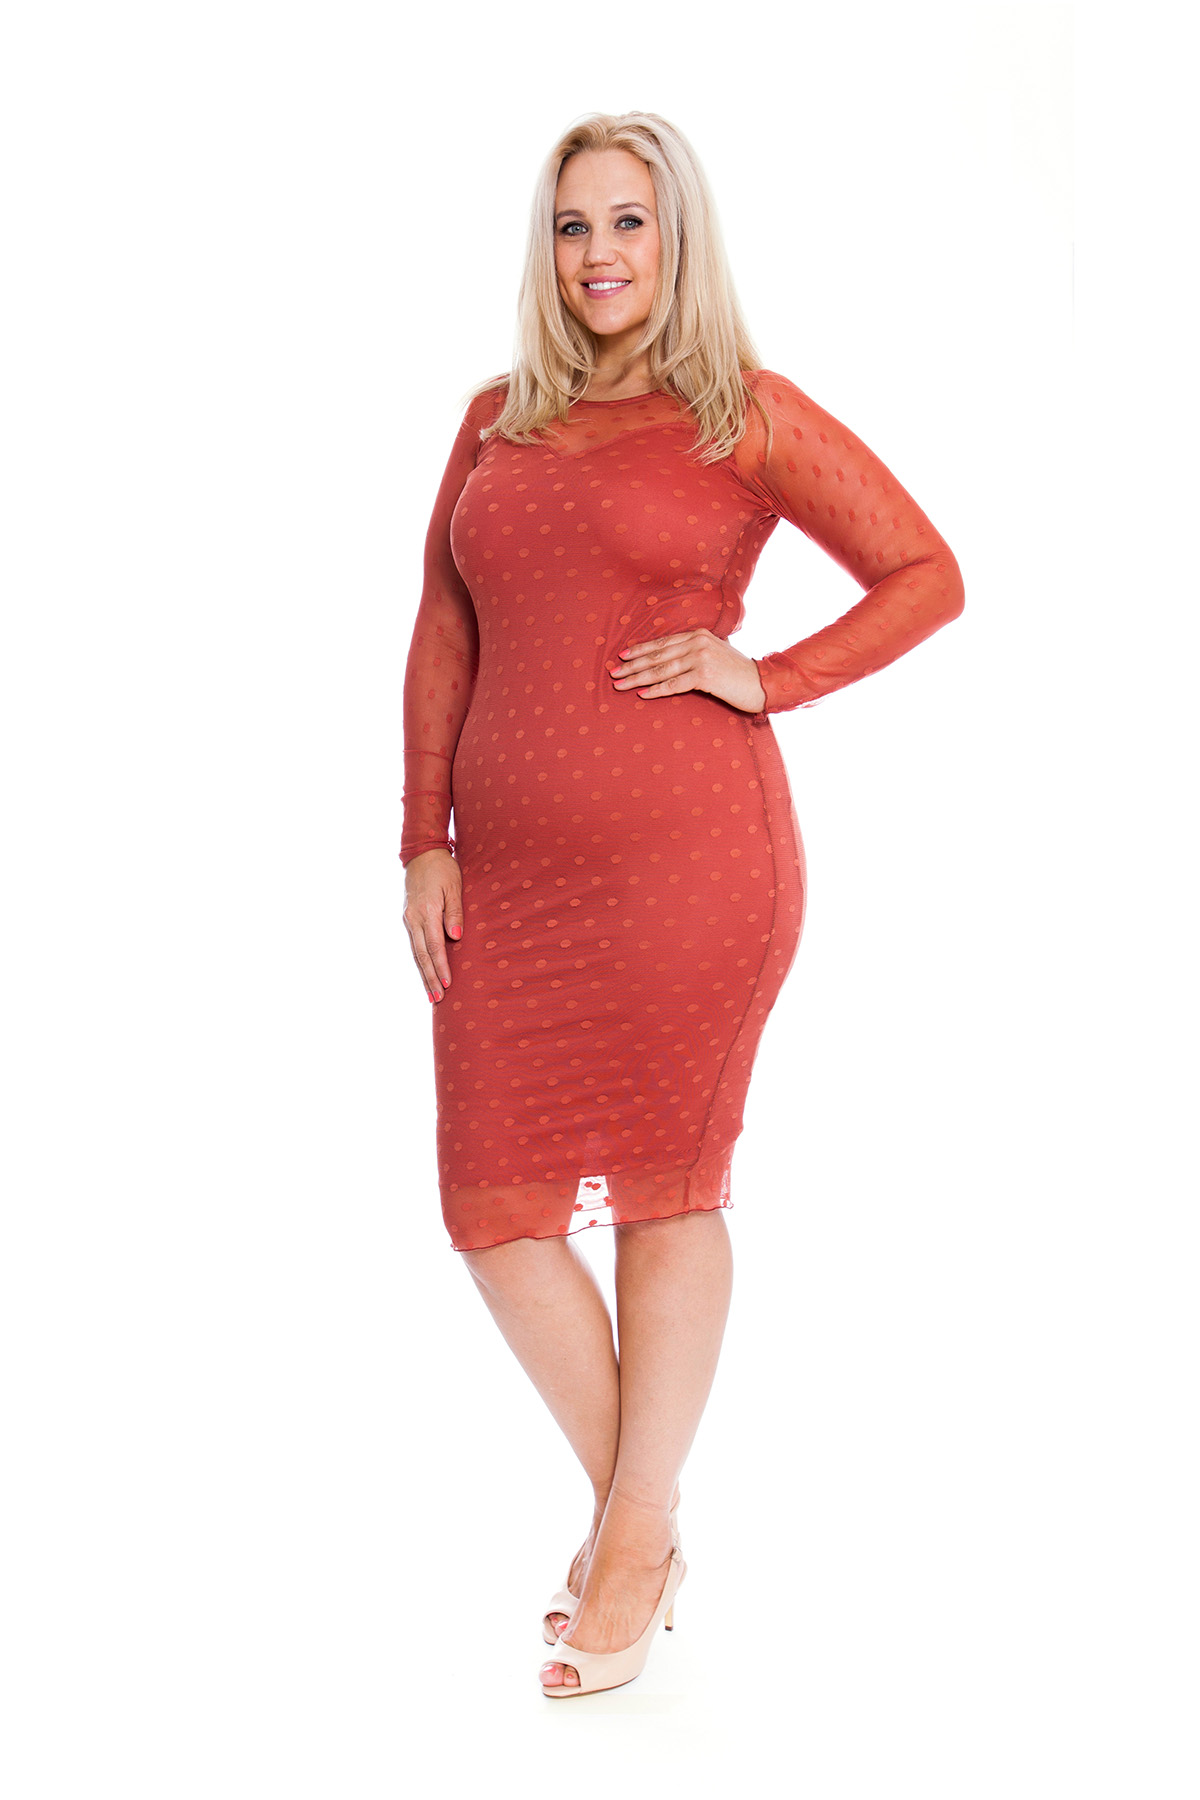 Shop bebe's selection of women's fashion clothing for every occasion. From parties and date nights to work and weekends, you'll find chic clothing, including stylish dresses, trendy jumpsuits, cute tops and more at bebe. Turn heads in chic clothing and contemporary fashion. Free shipping over $!